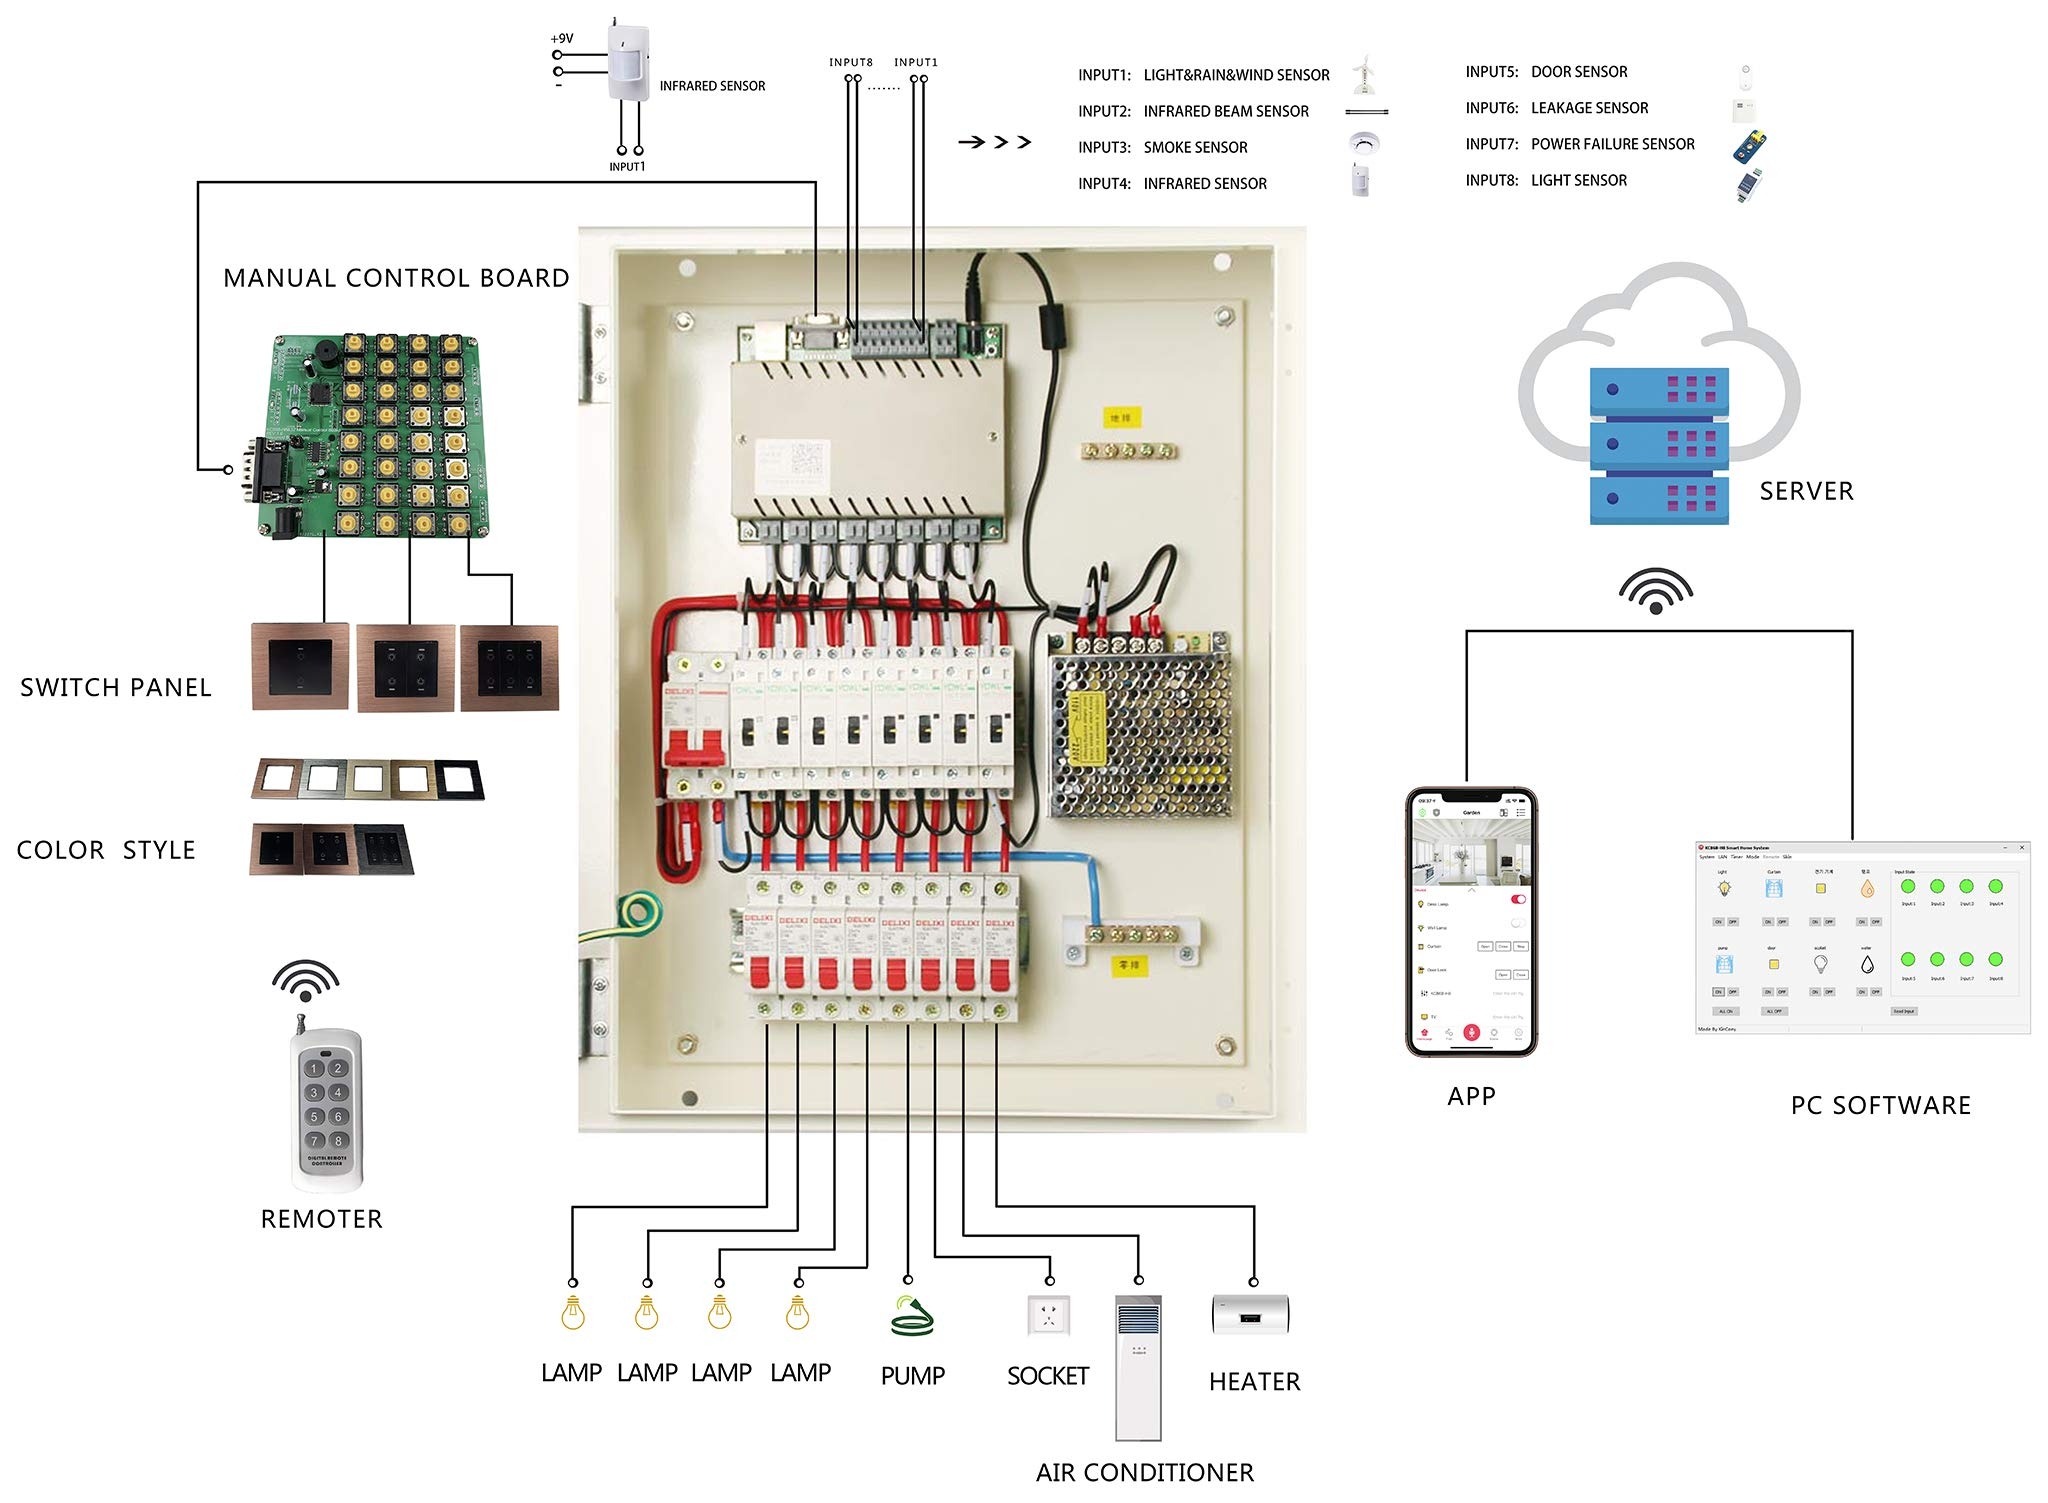 KinCony KC868-H8 gang Network IP Web Relay Controller module Ethernet rs232 for DIY smart home remote switch supply ios android app pc with protocol and sample source code by KinCony (Image #6)